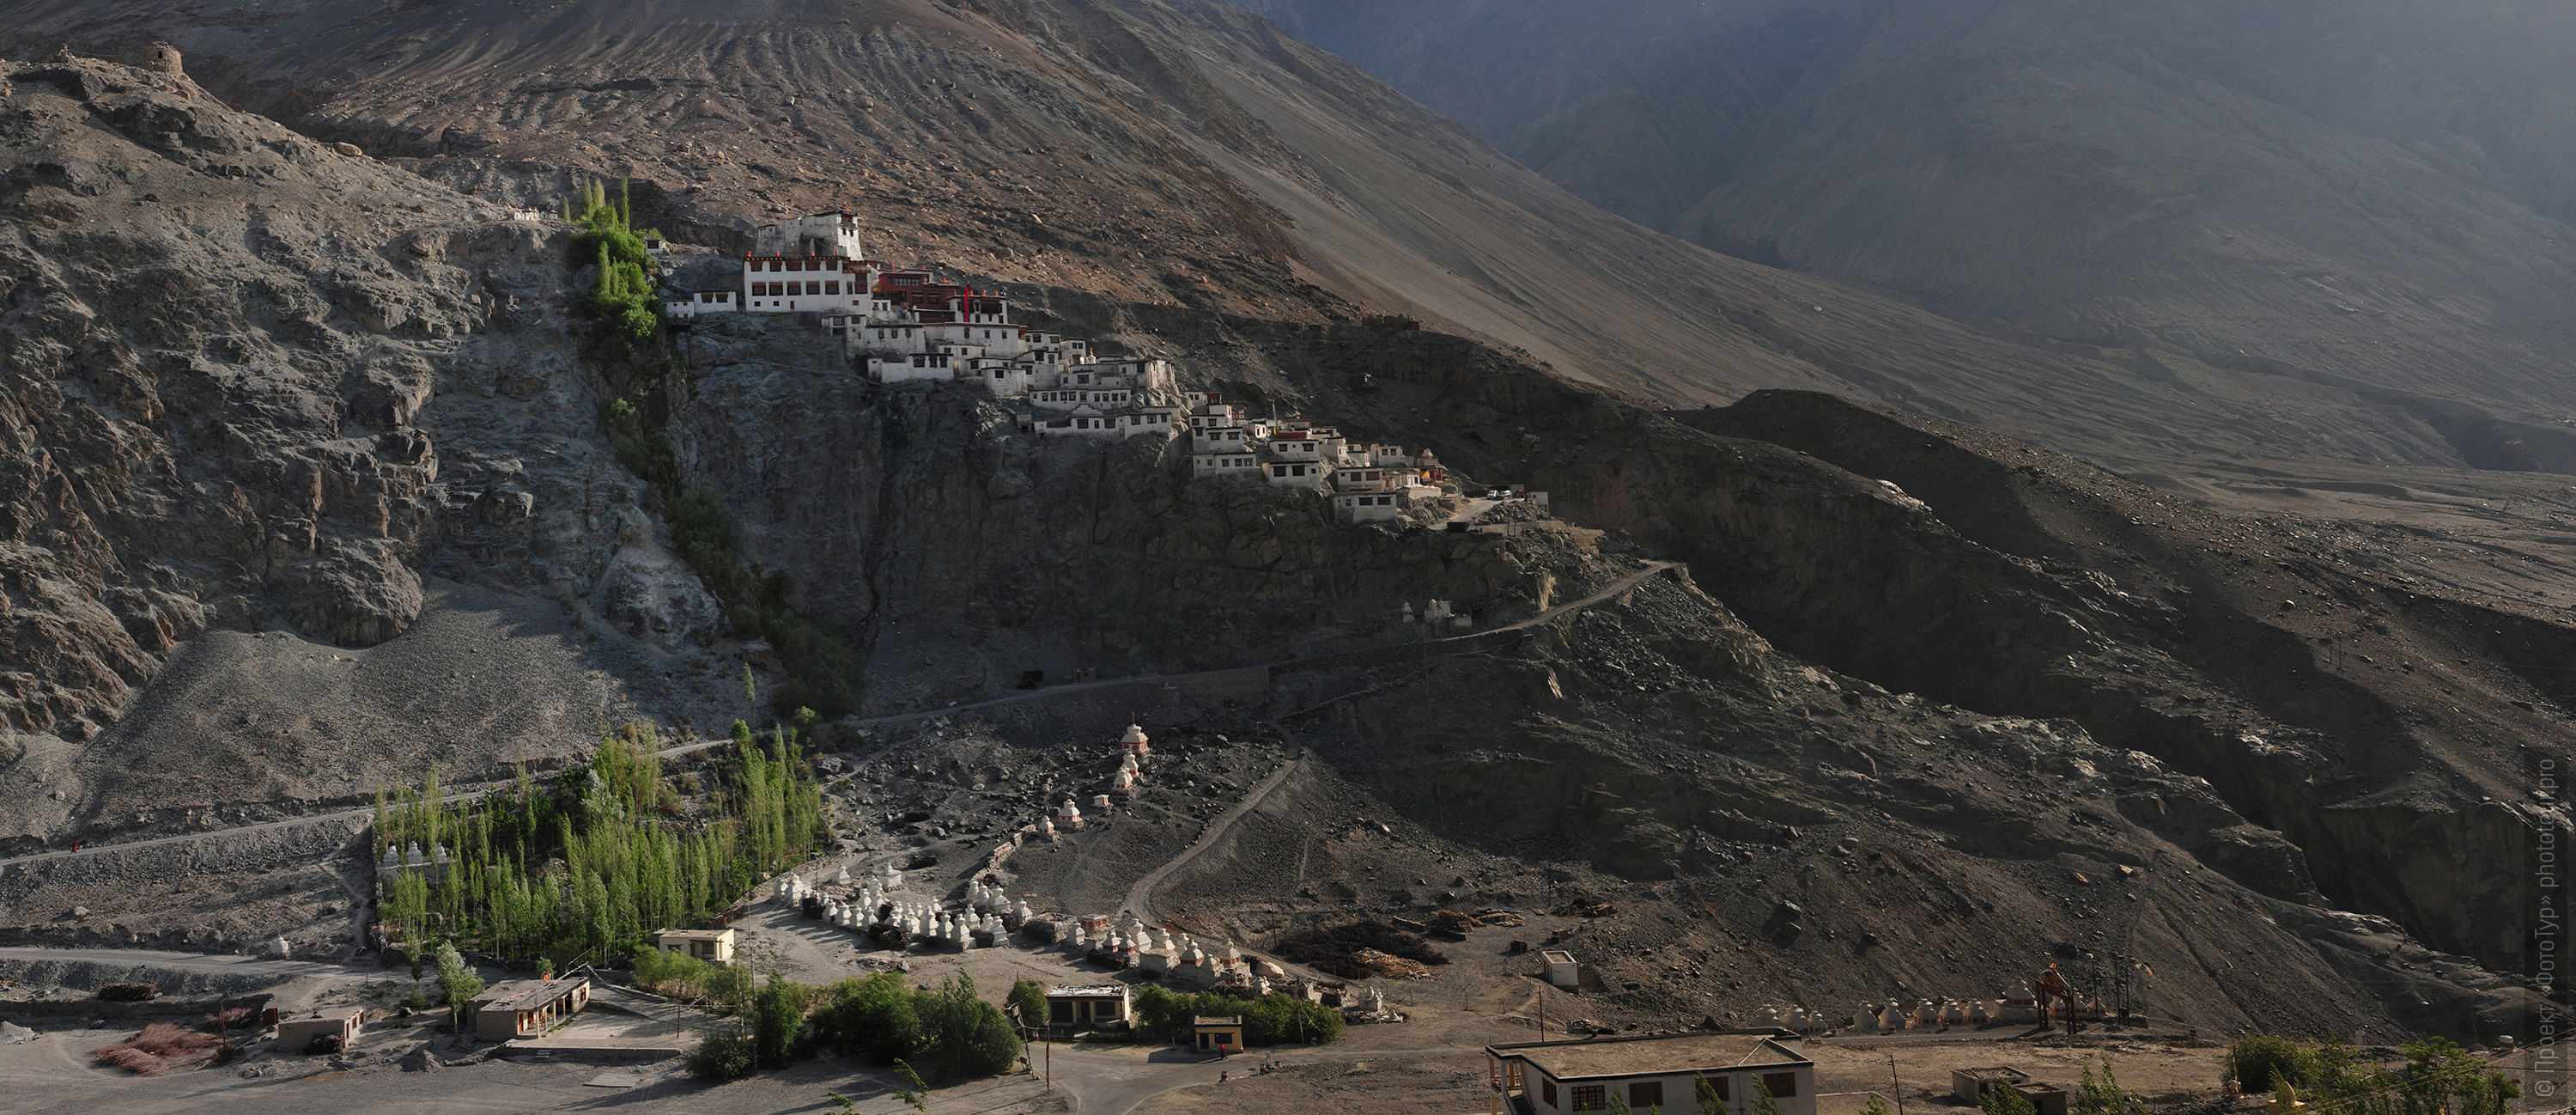 Buddhist monastery of Diskit gompa. Tour Legends of Tibet: Ladakh, Lamayuru, Da Khan and Nubra, 19.09. - 28.09.2019.